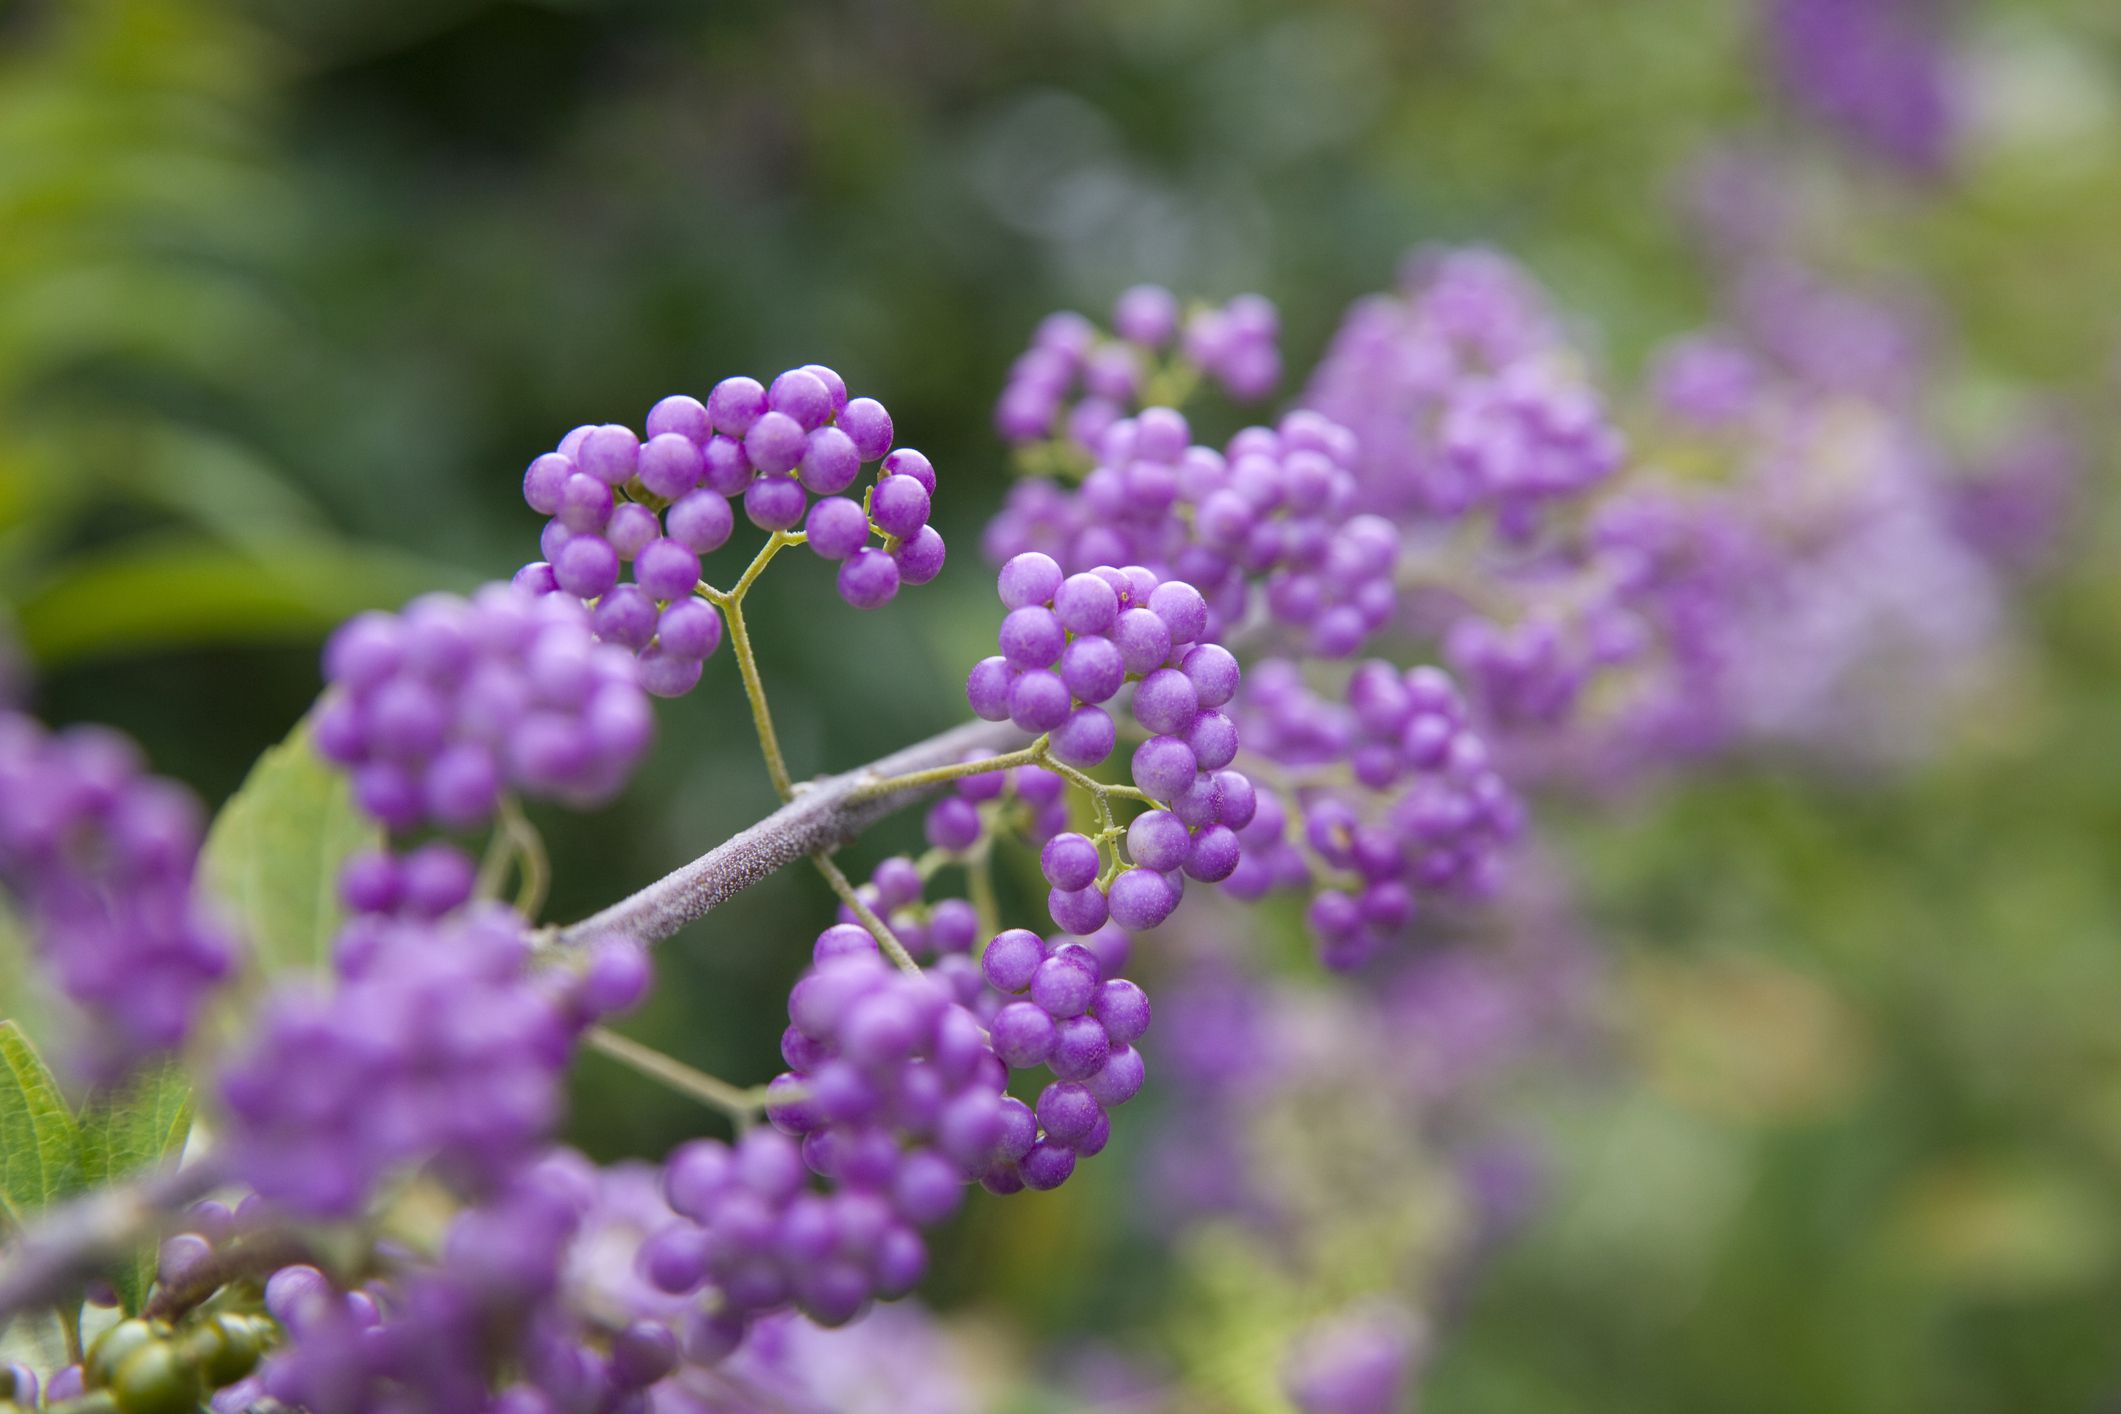 How To Grow And Care For Purple Beautyberry Shrubs